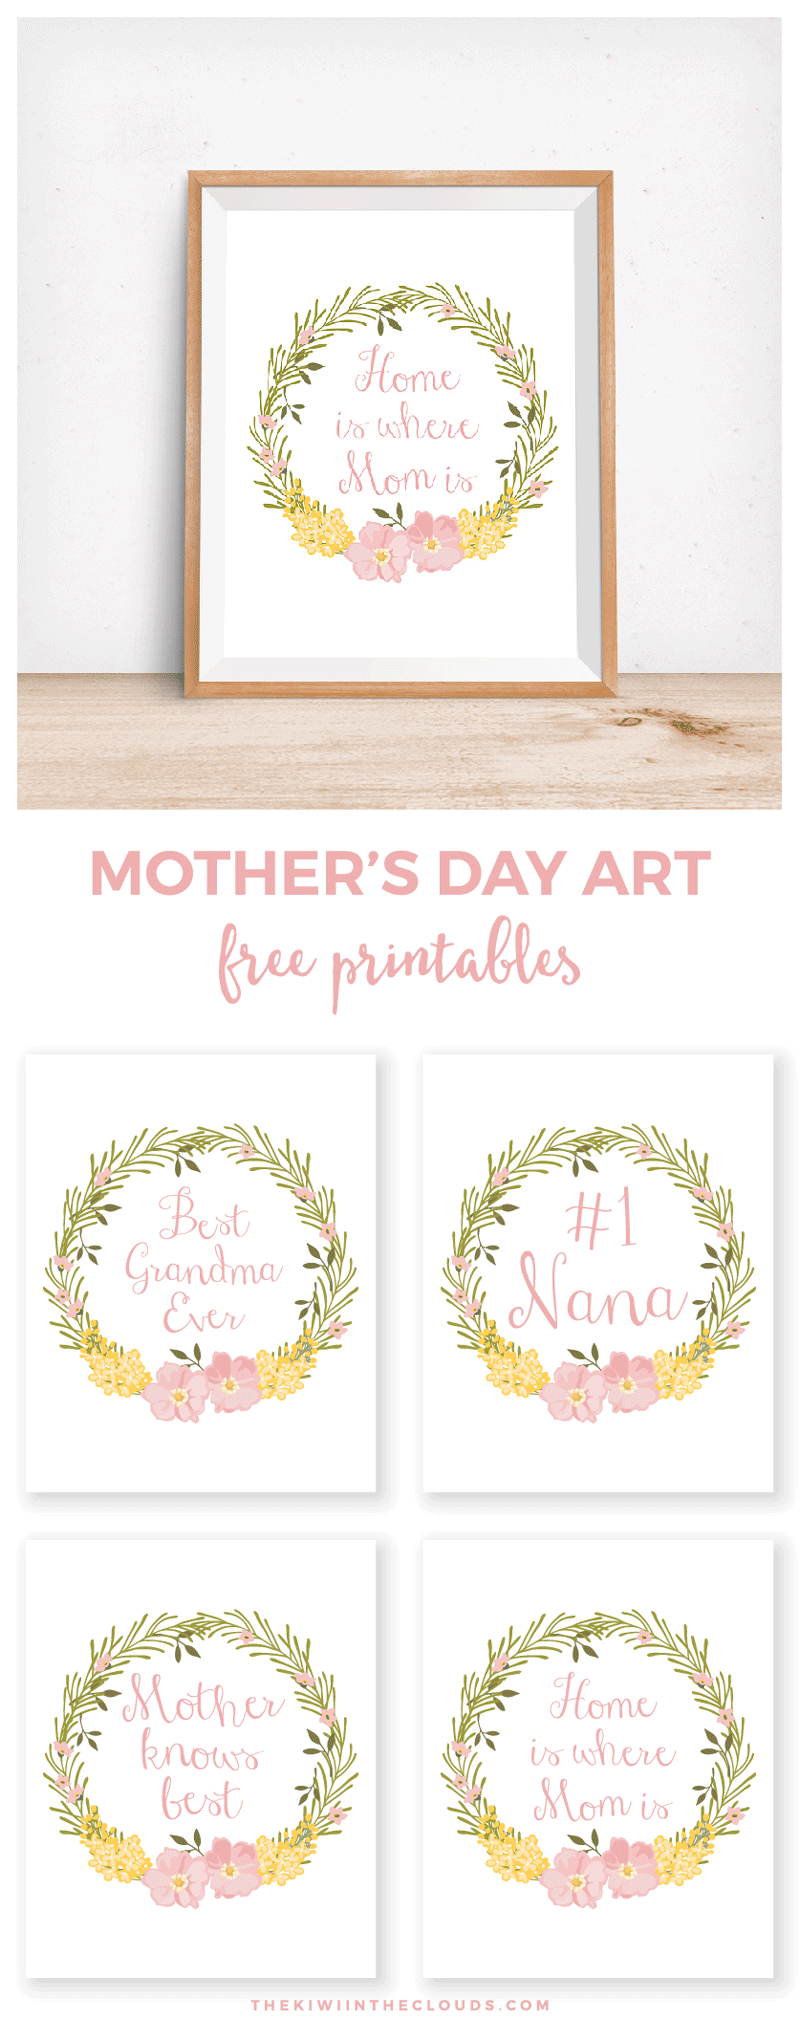 mothers-day-printable-art-06-web